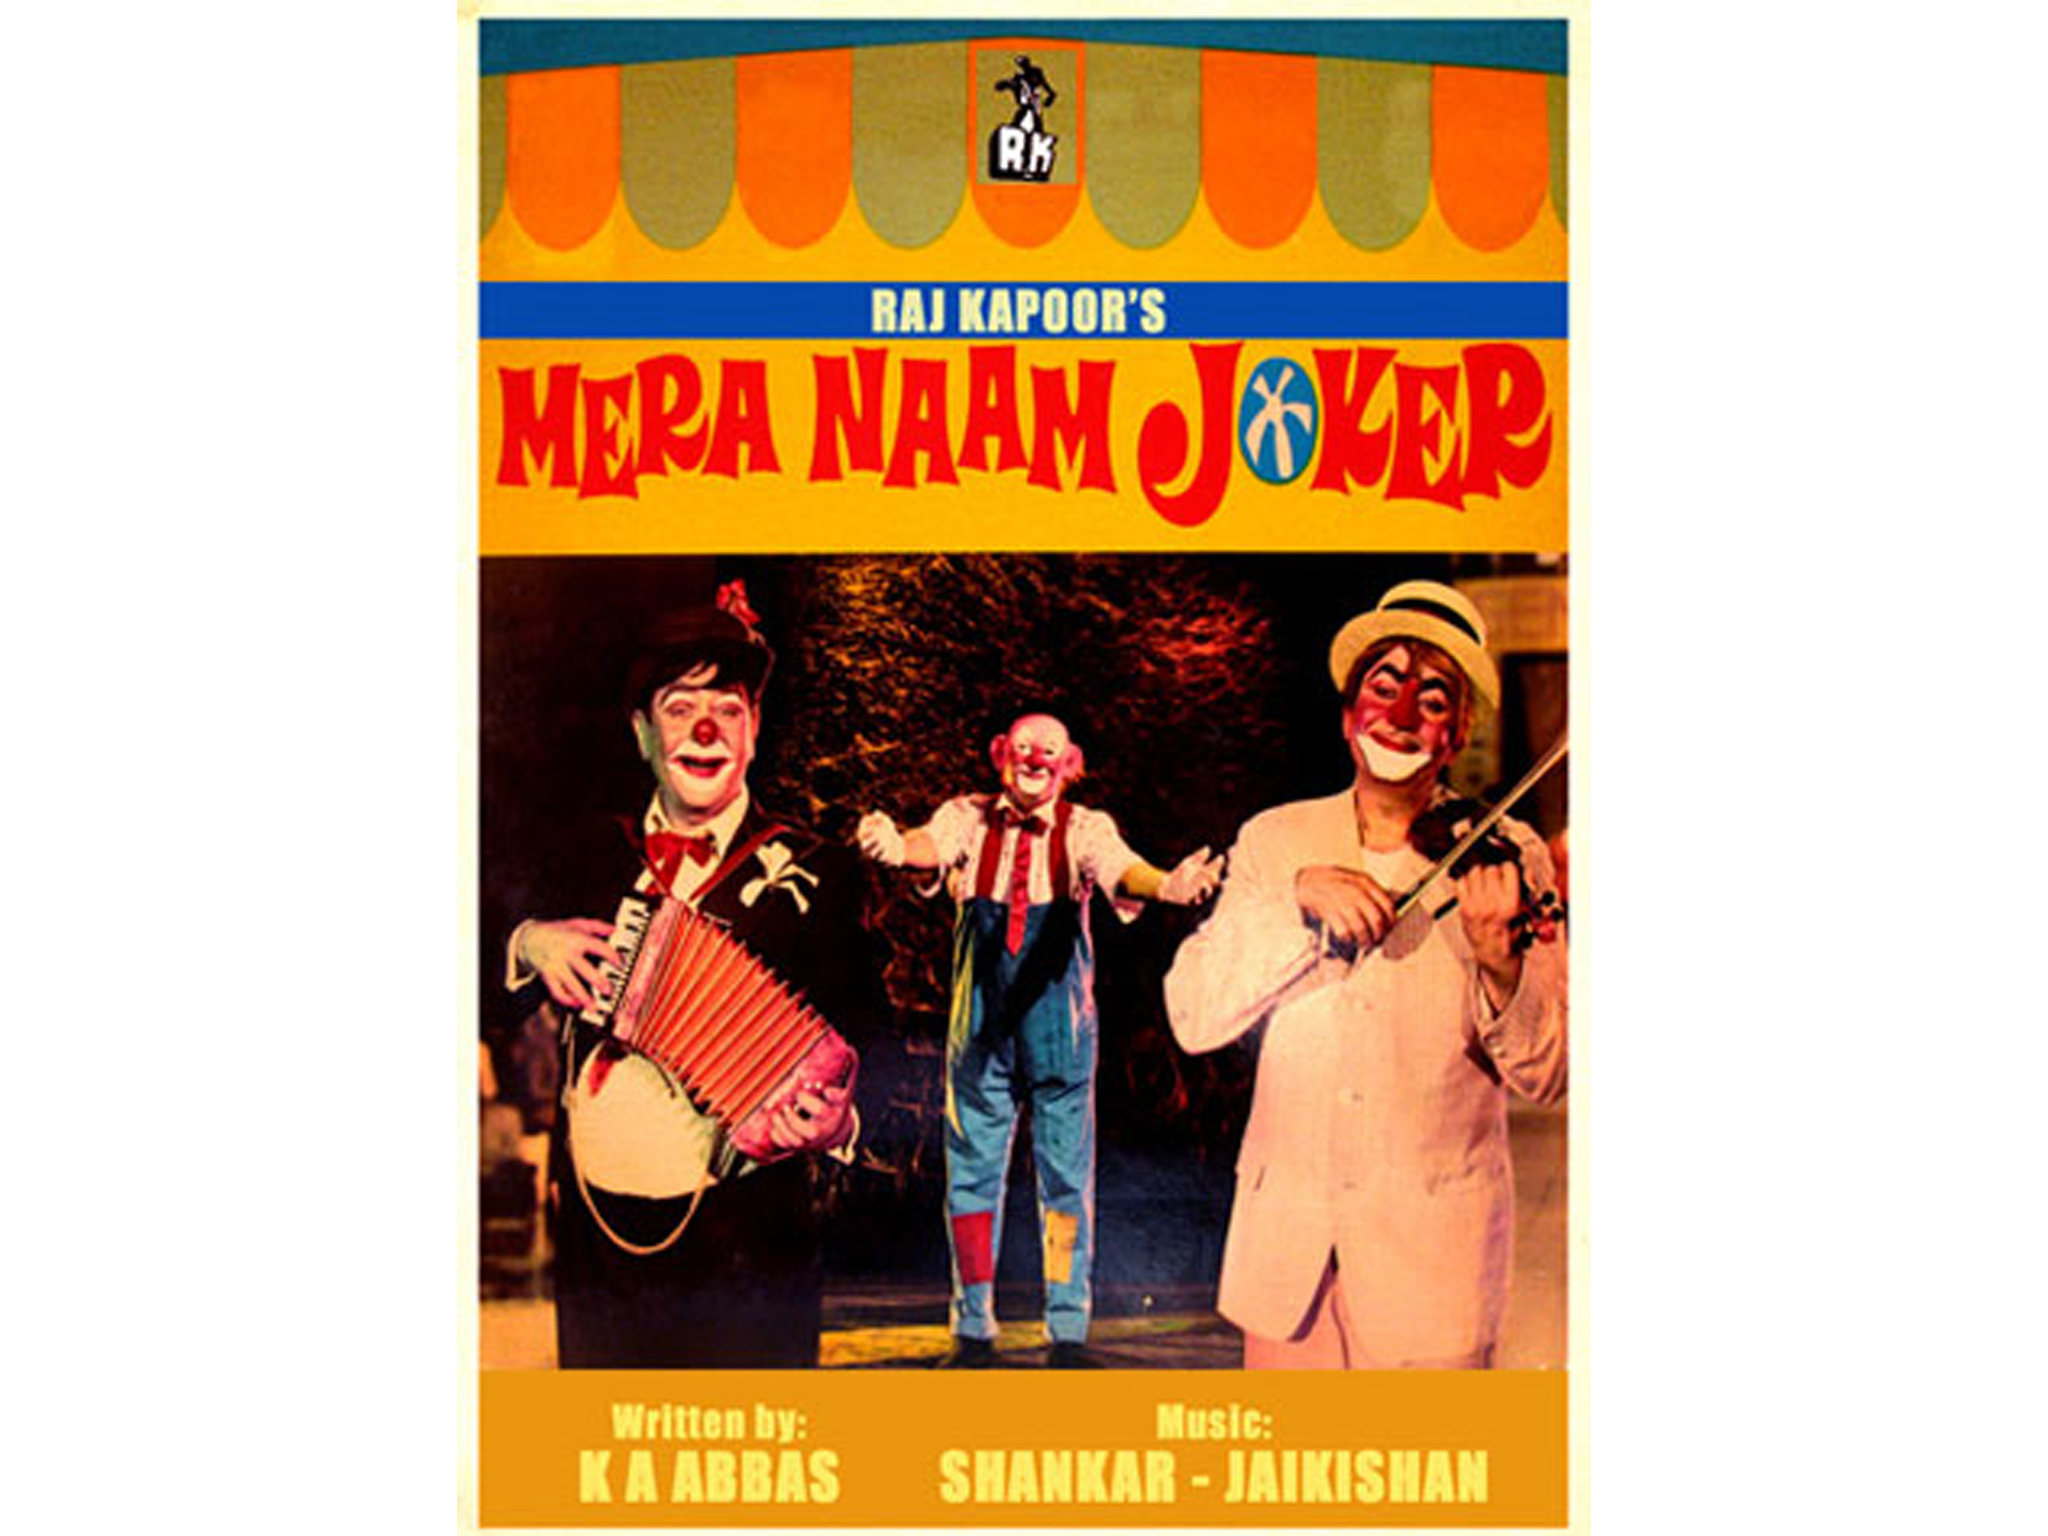 Hindi movie: Mera Naam Joker